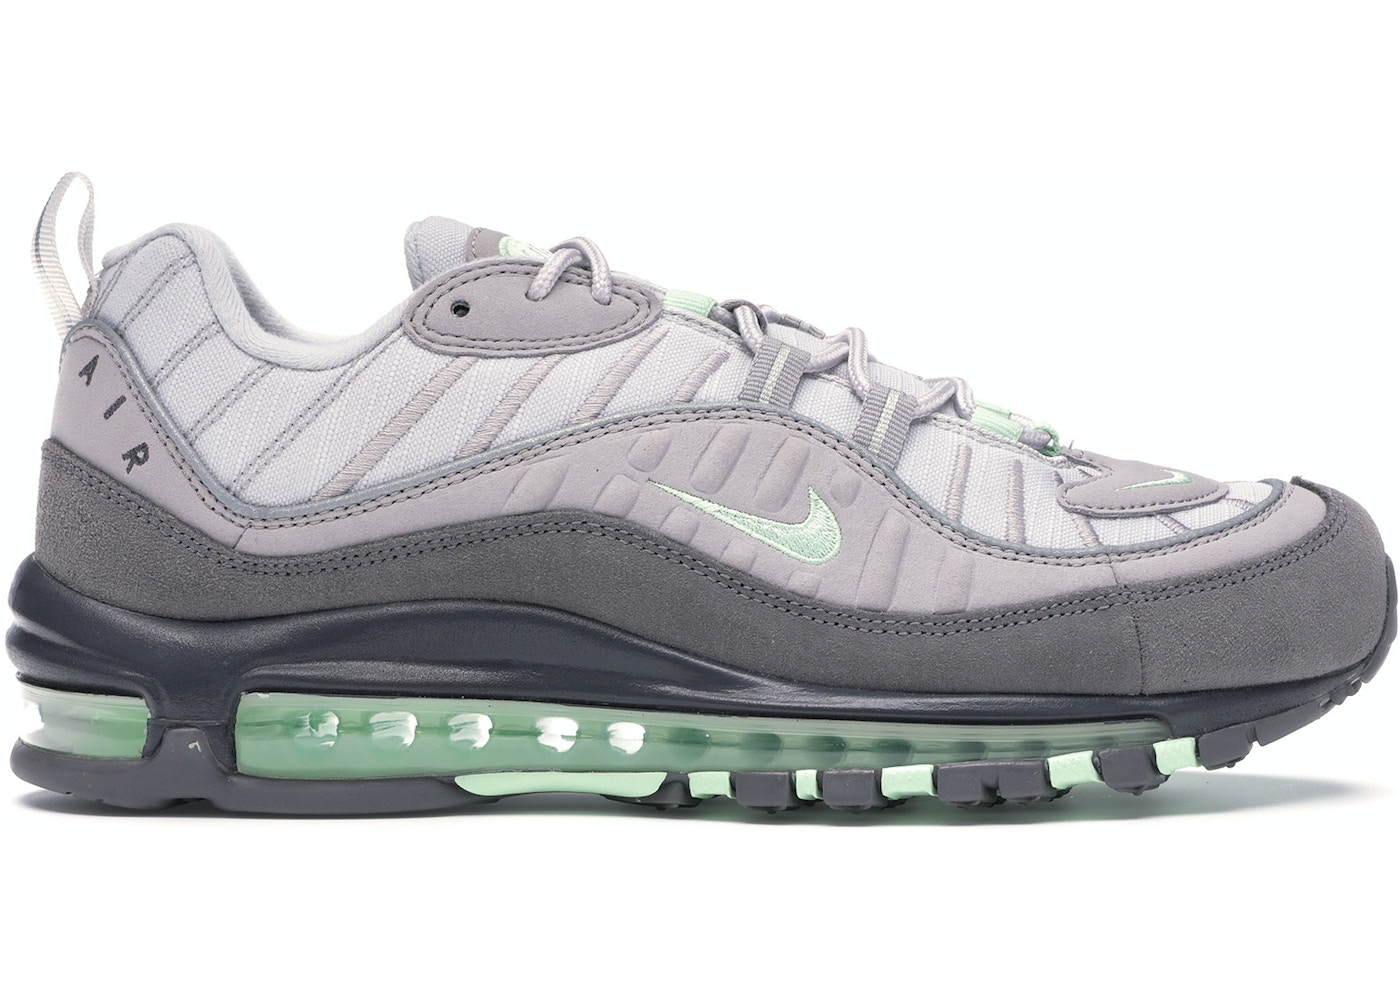 Ártico inferencia secuestrar  Buy Nike Air Max 98 Shoes & Deadstock Sneakers